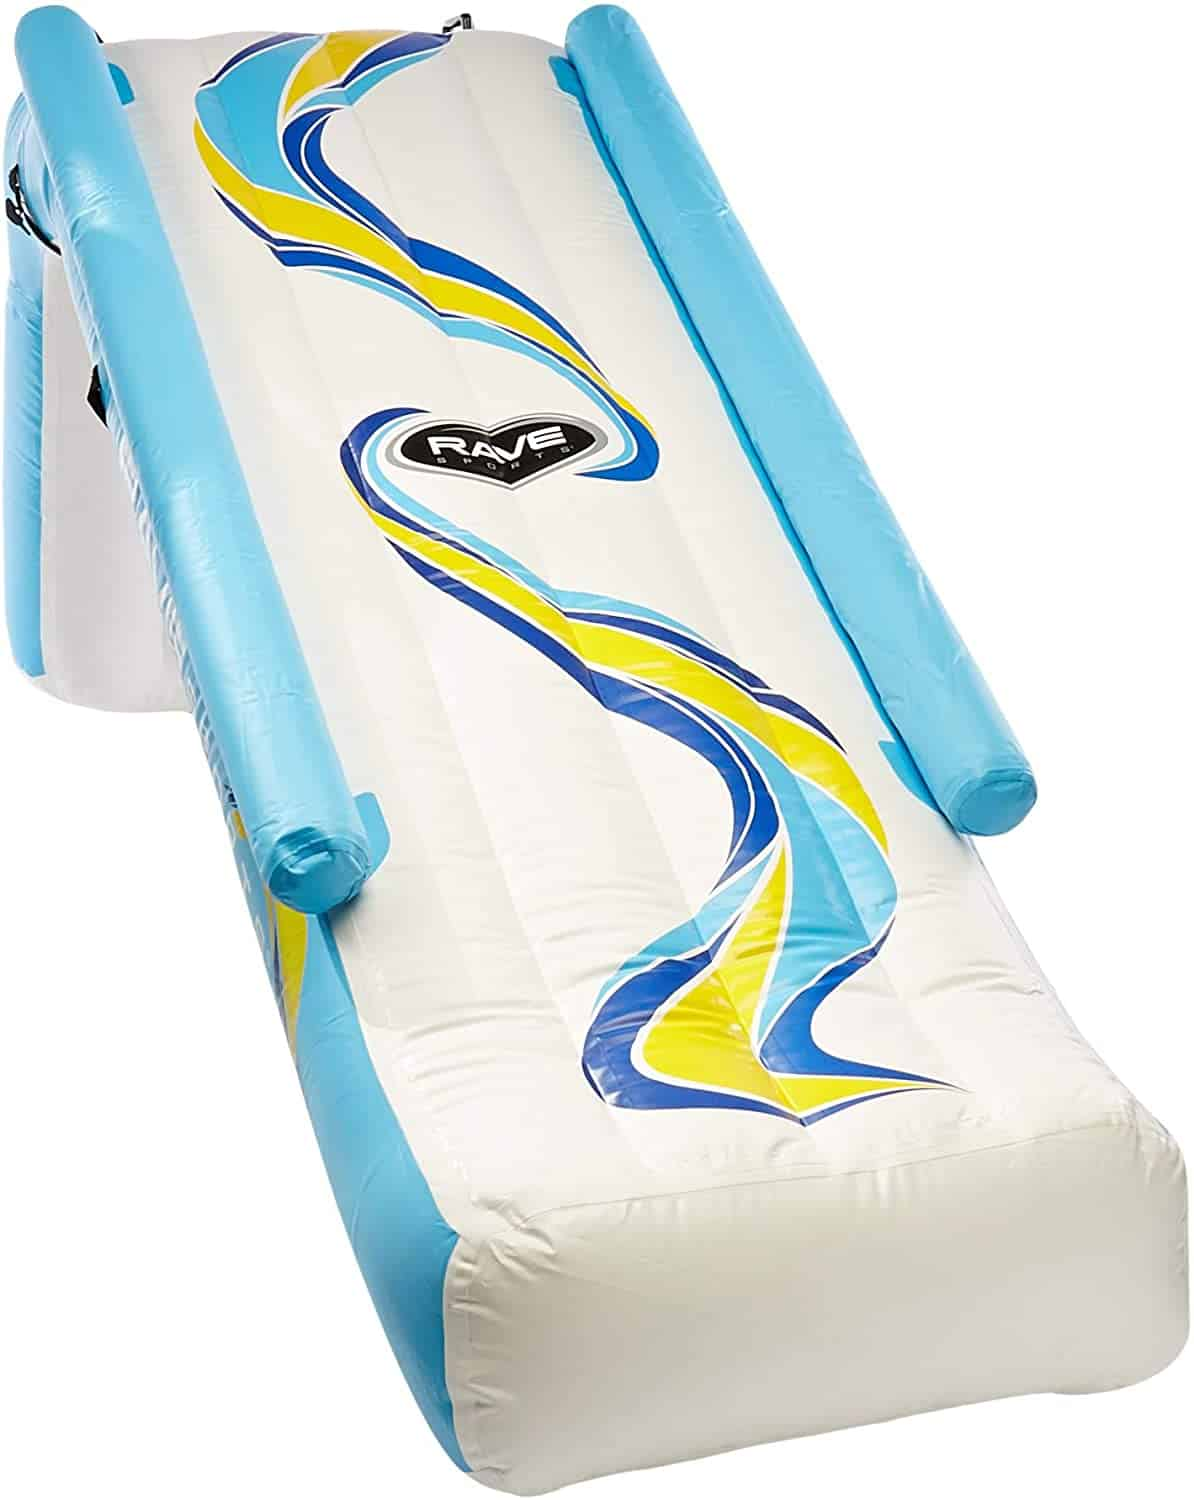 Pontoon Slide by Rave Sports